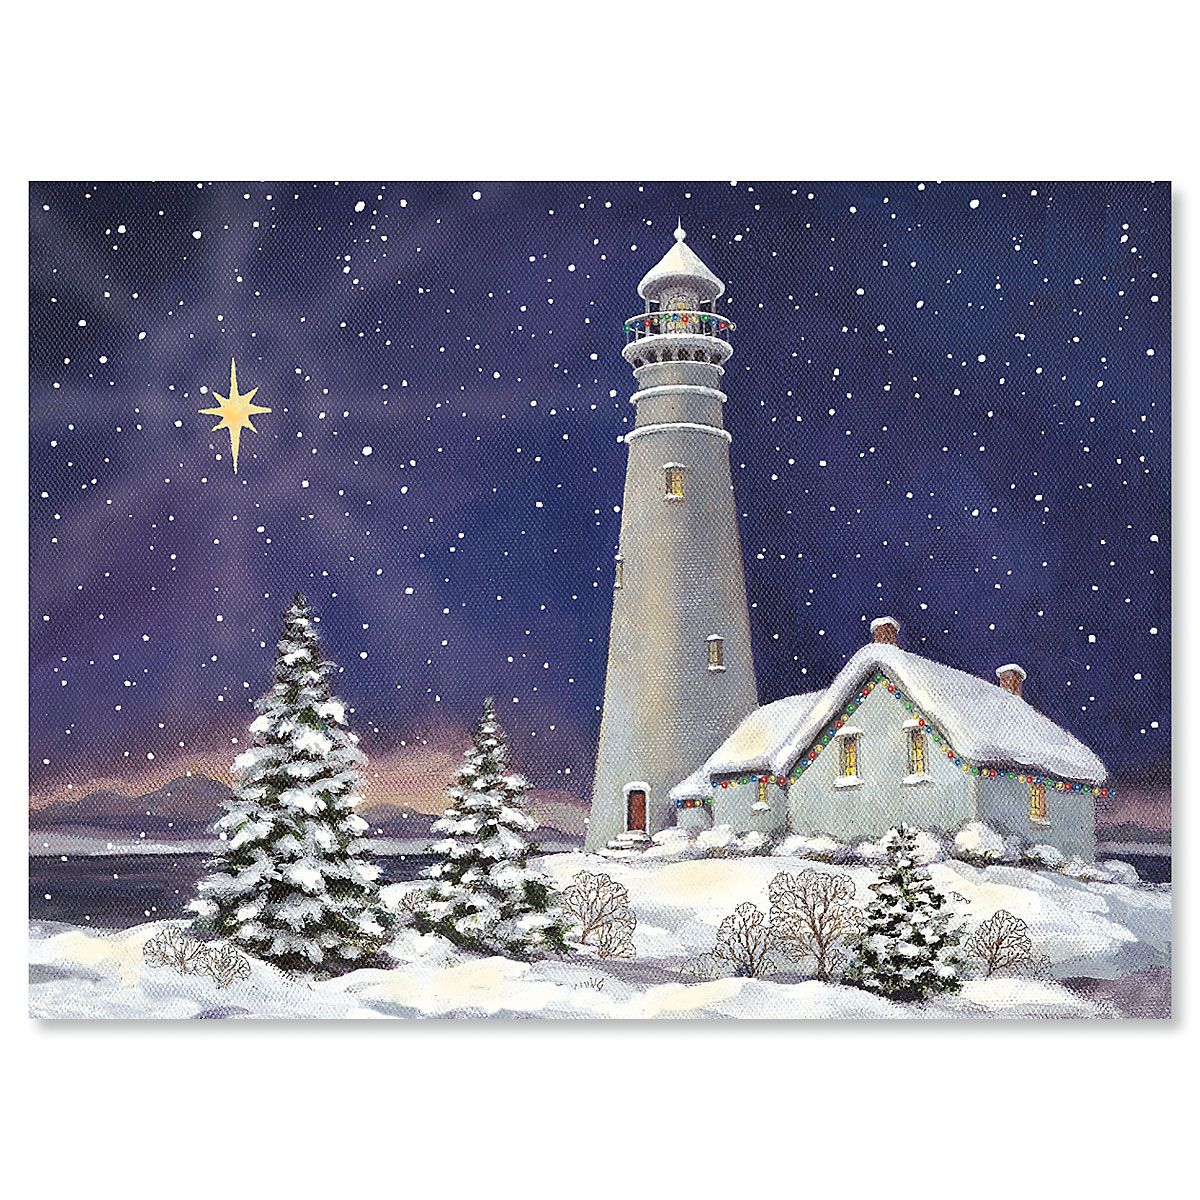 December Light Nonpersonalized Christmas Cards - Set of 72